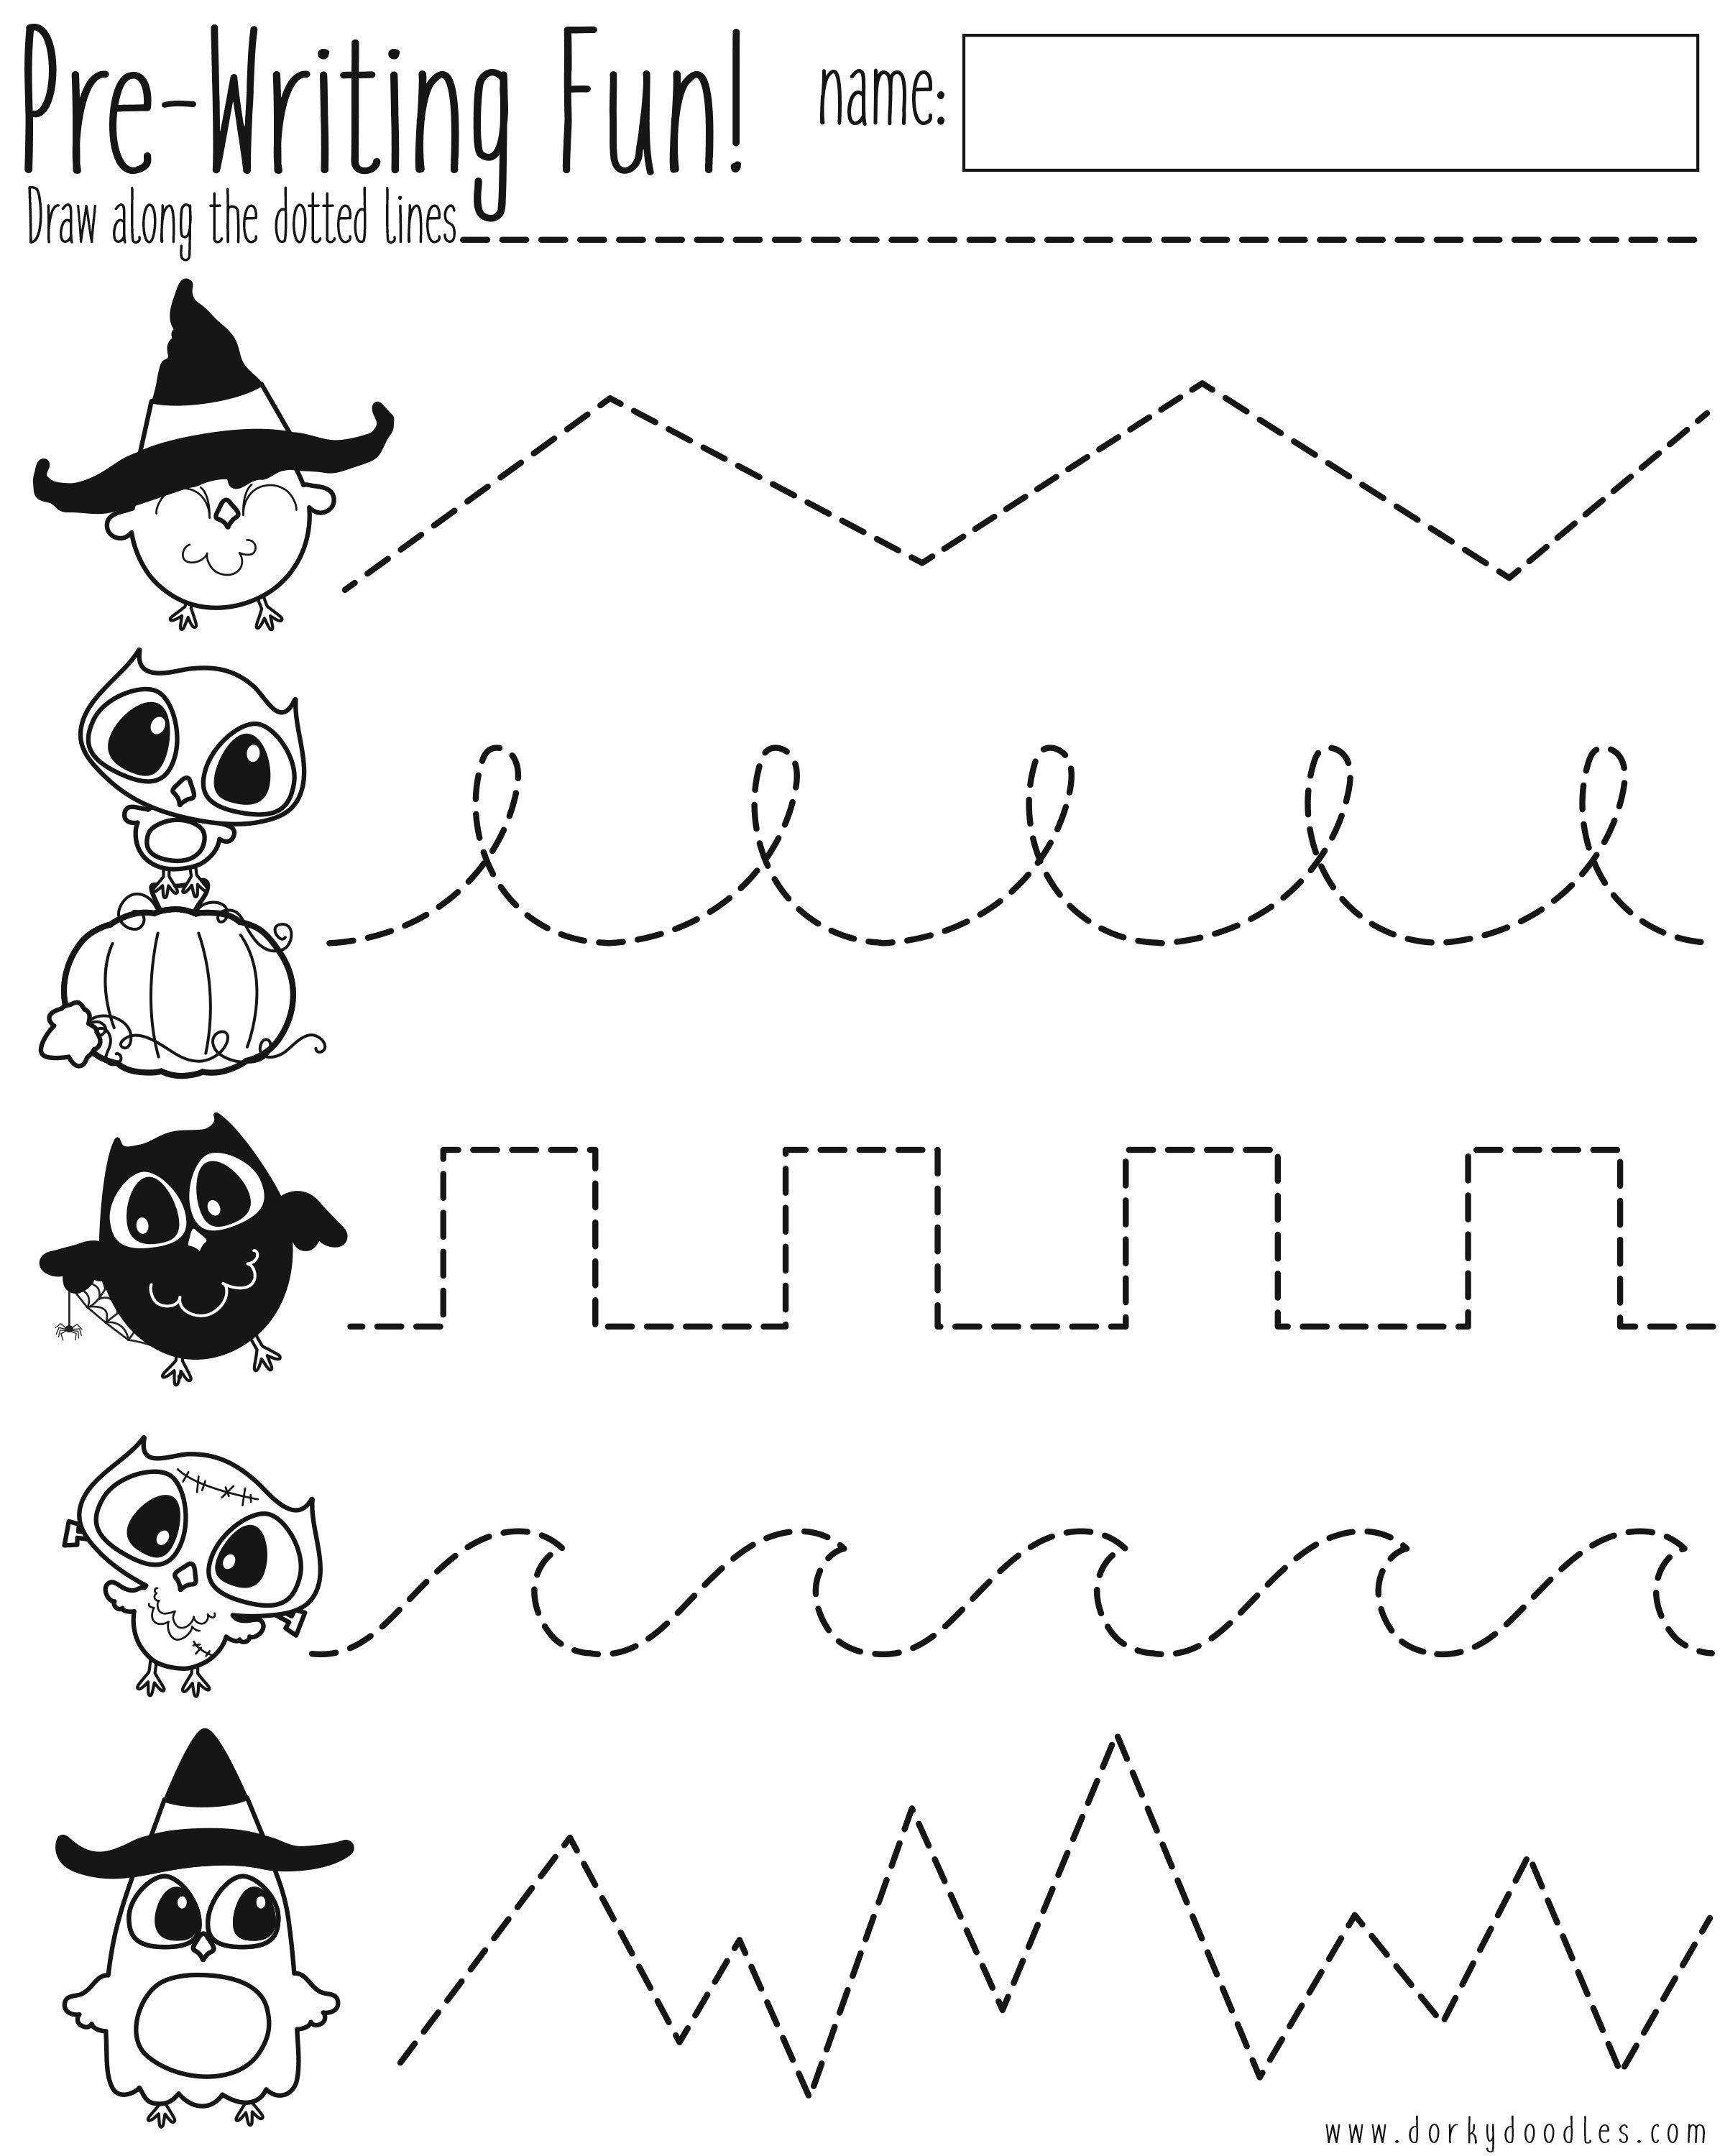 Preschool Halloween Worksheets Free Pre Writing Practice Halloween Worksheet